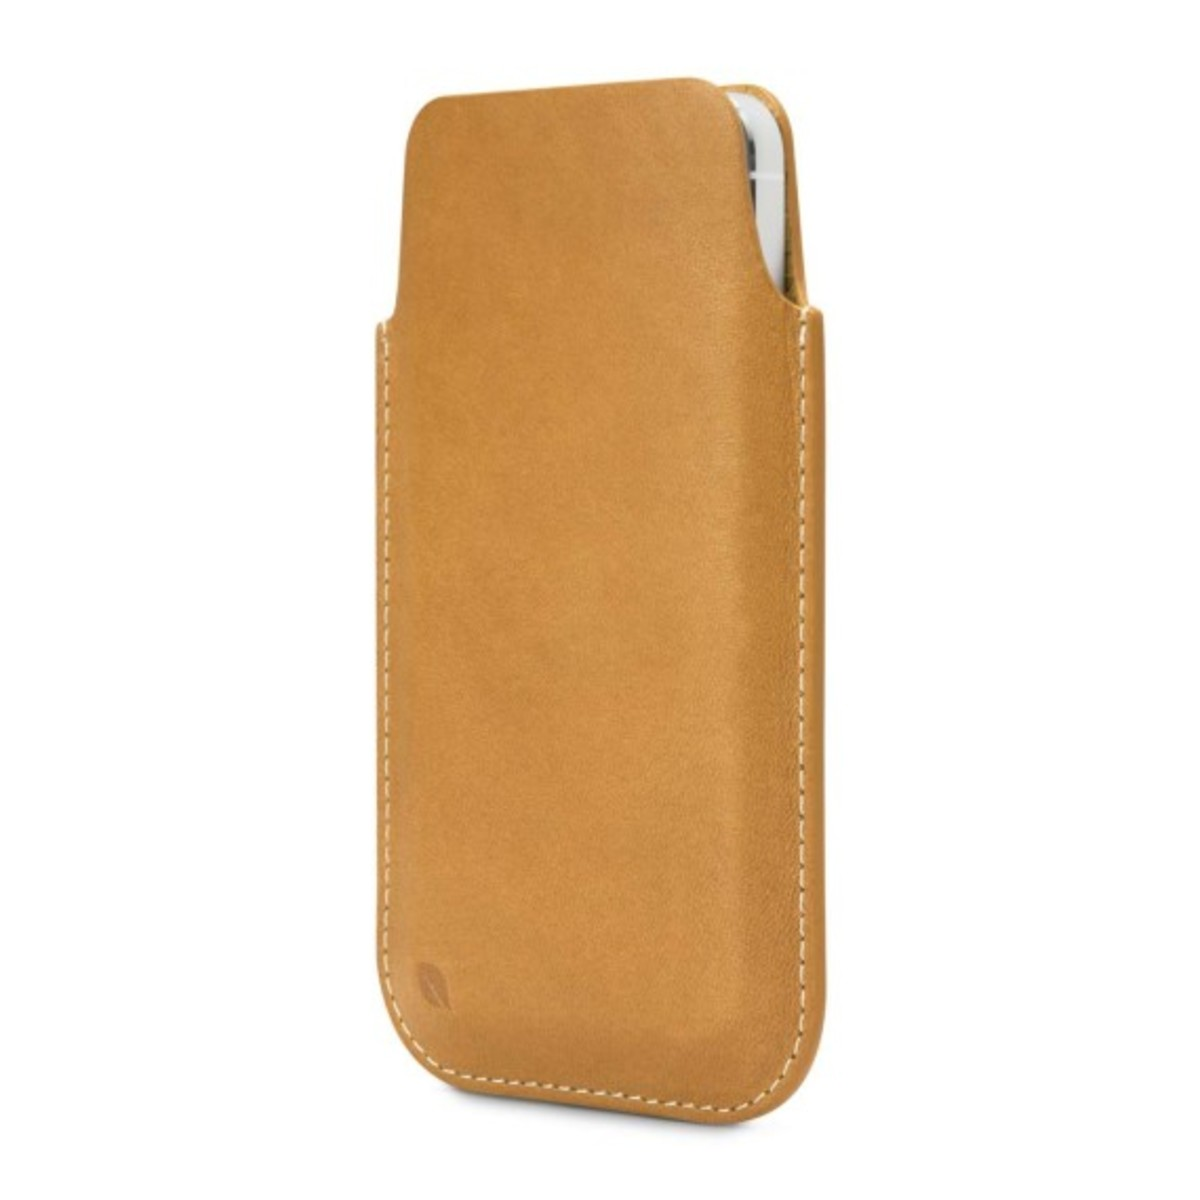 incase-iphone-5-leather-pouch-05